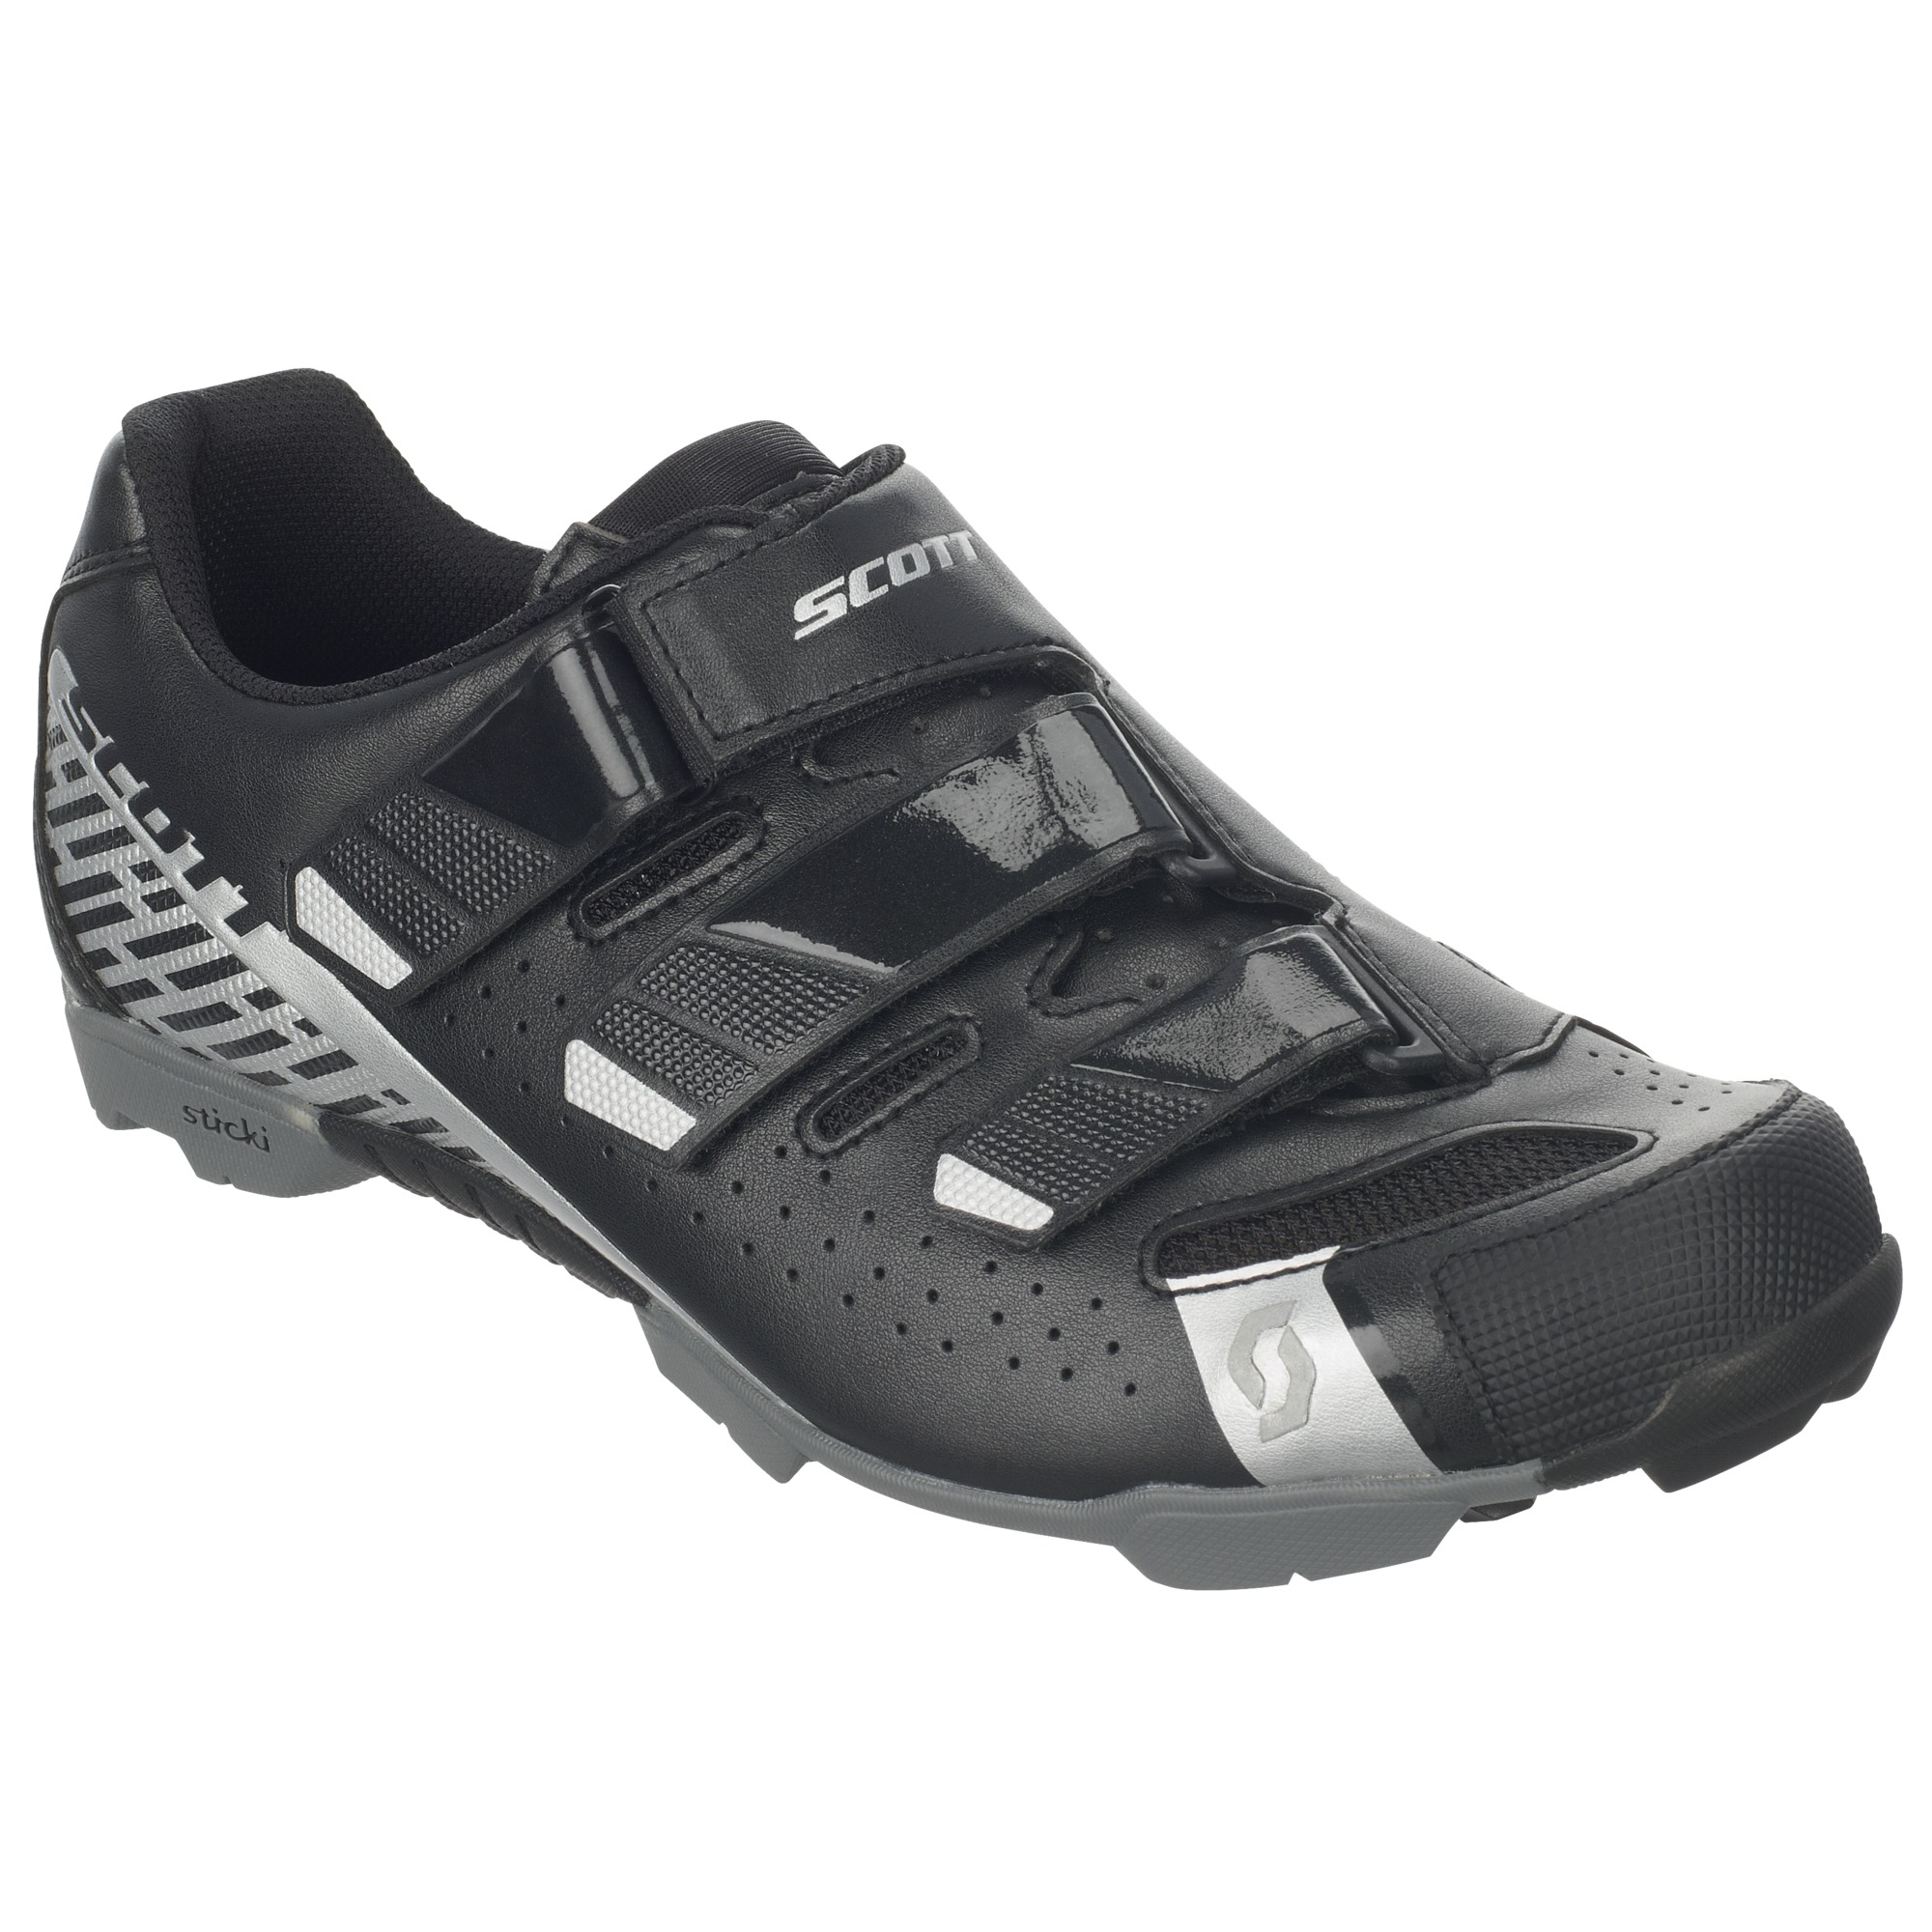 SCOTT Mtb Comp Rs Shoe